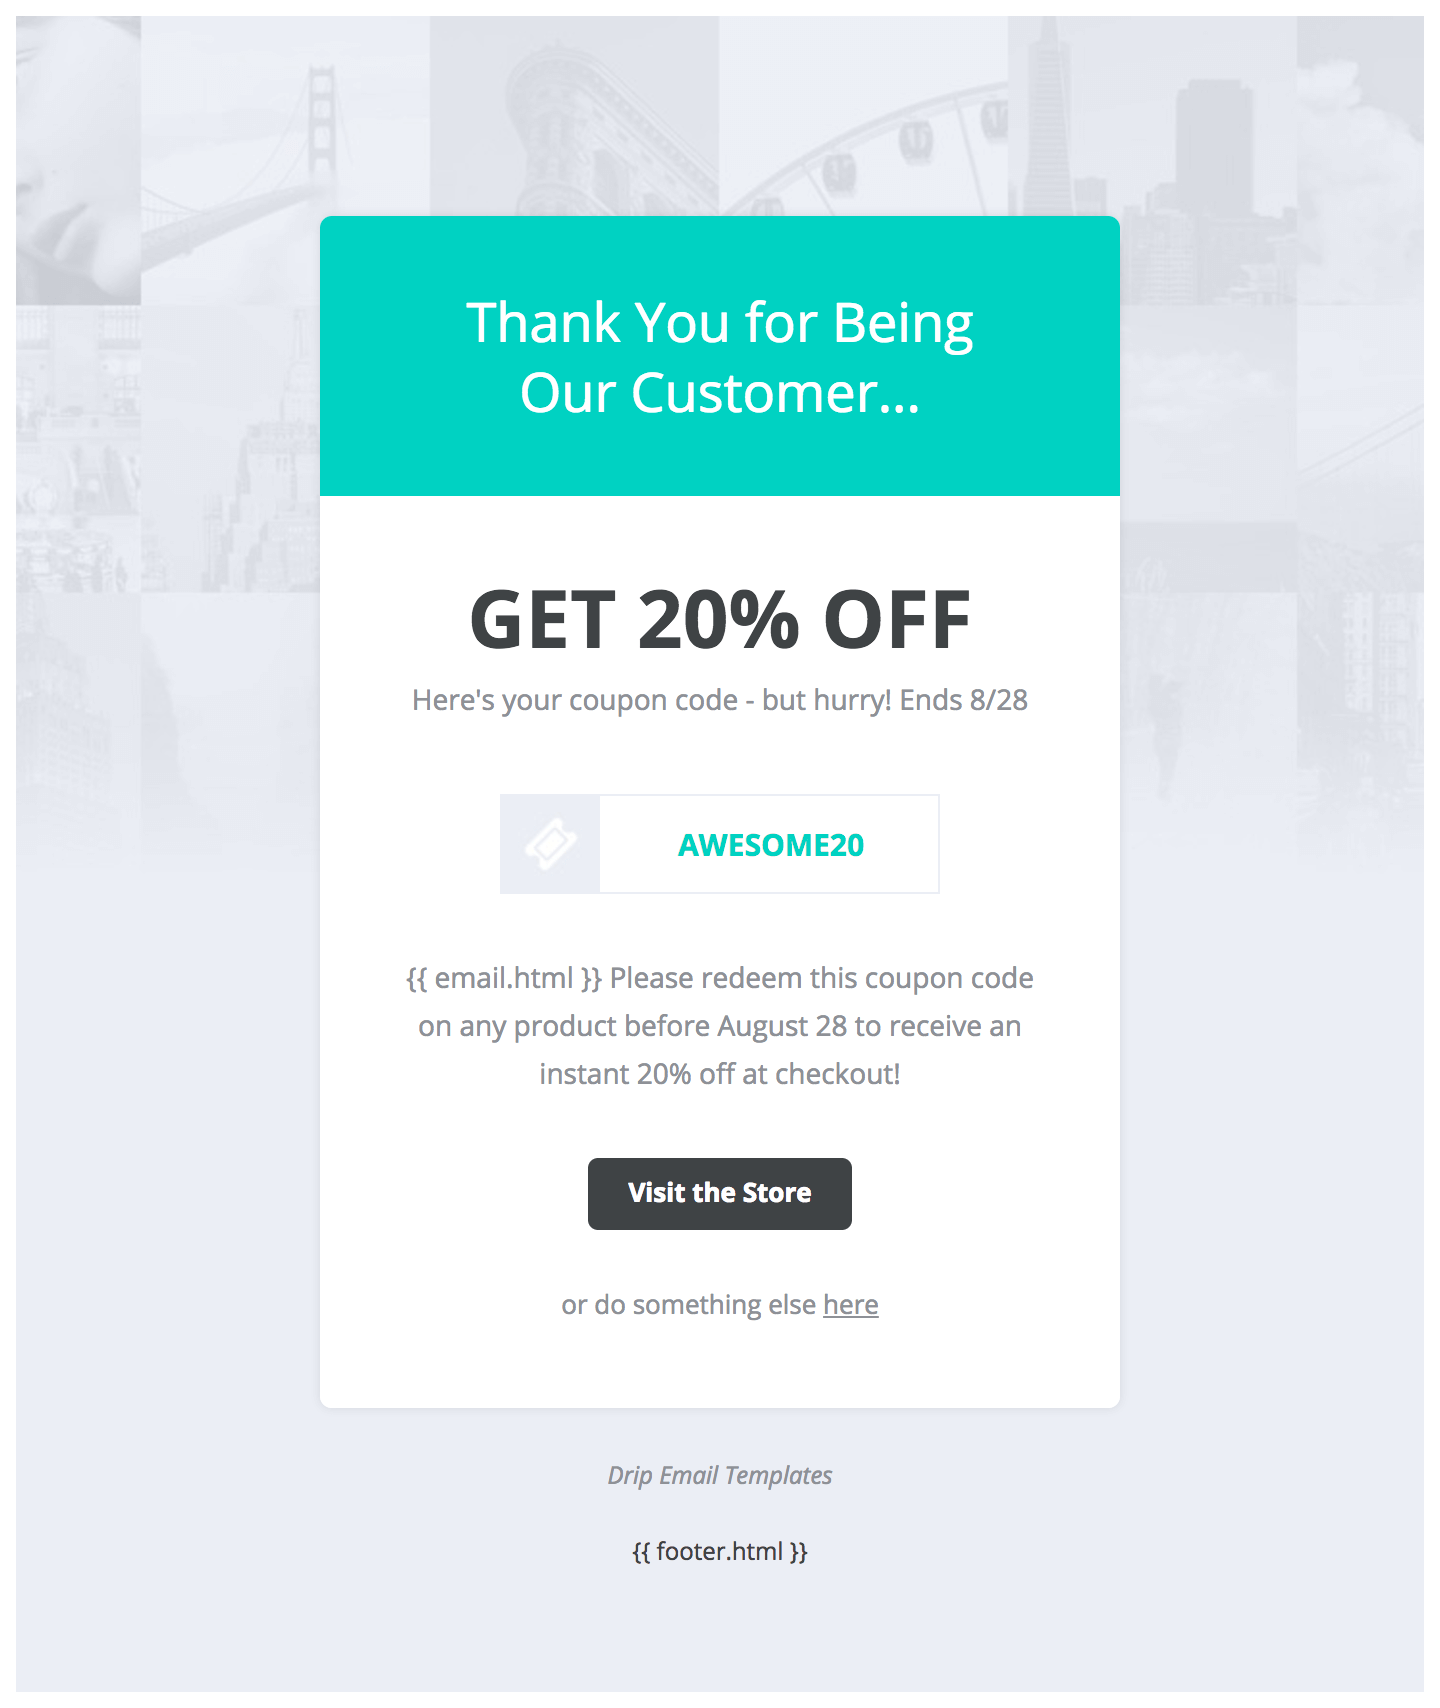 Drip email templates easy to import drip email templates enter your email to preview this template in your inbox fandeluxe Choice Image